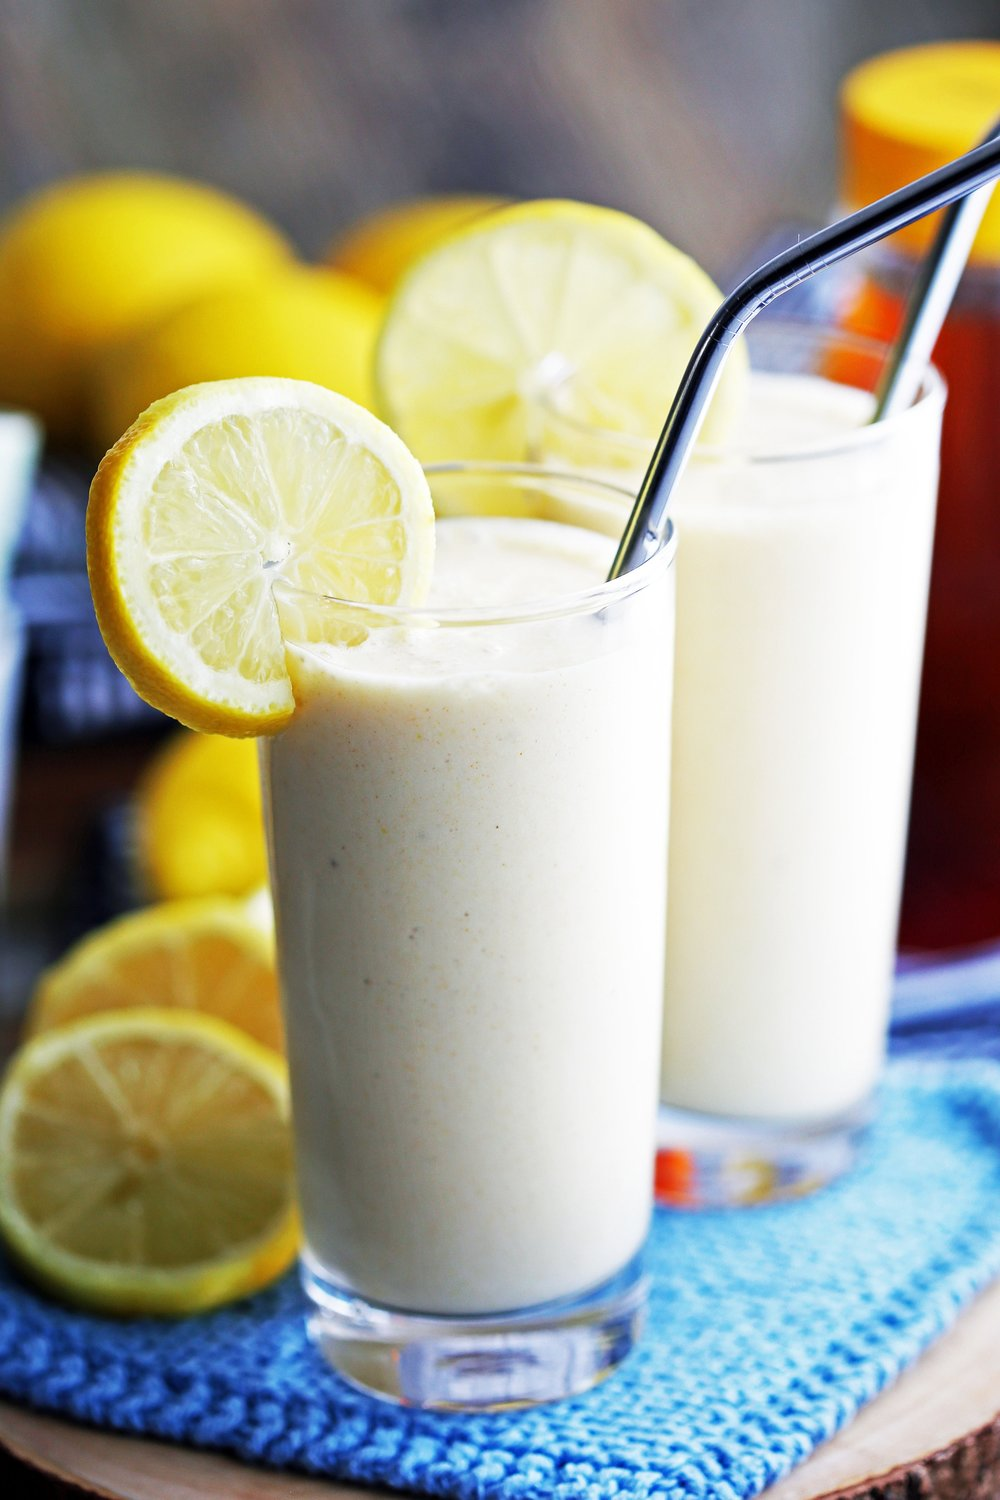 Lemon Pineapple Smoothie drinks in tall glasses with metal straws and lemon slices on the rim.